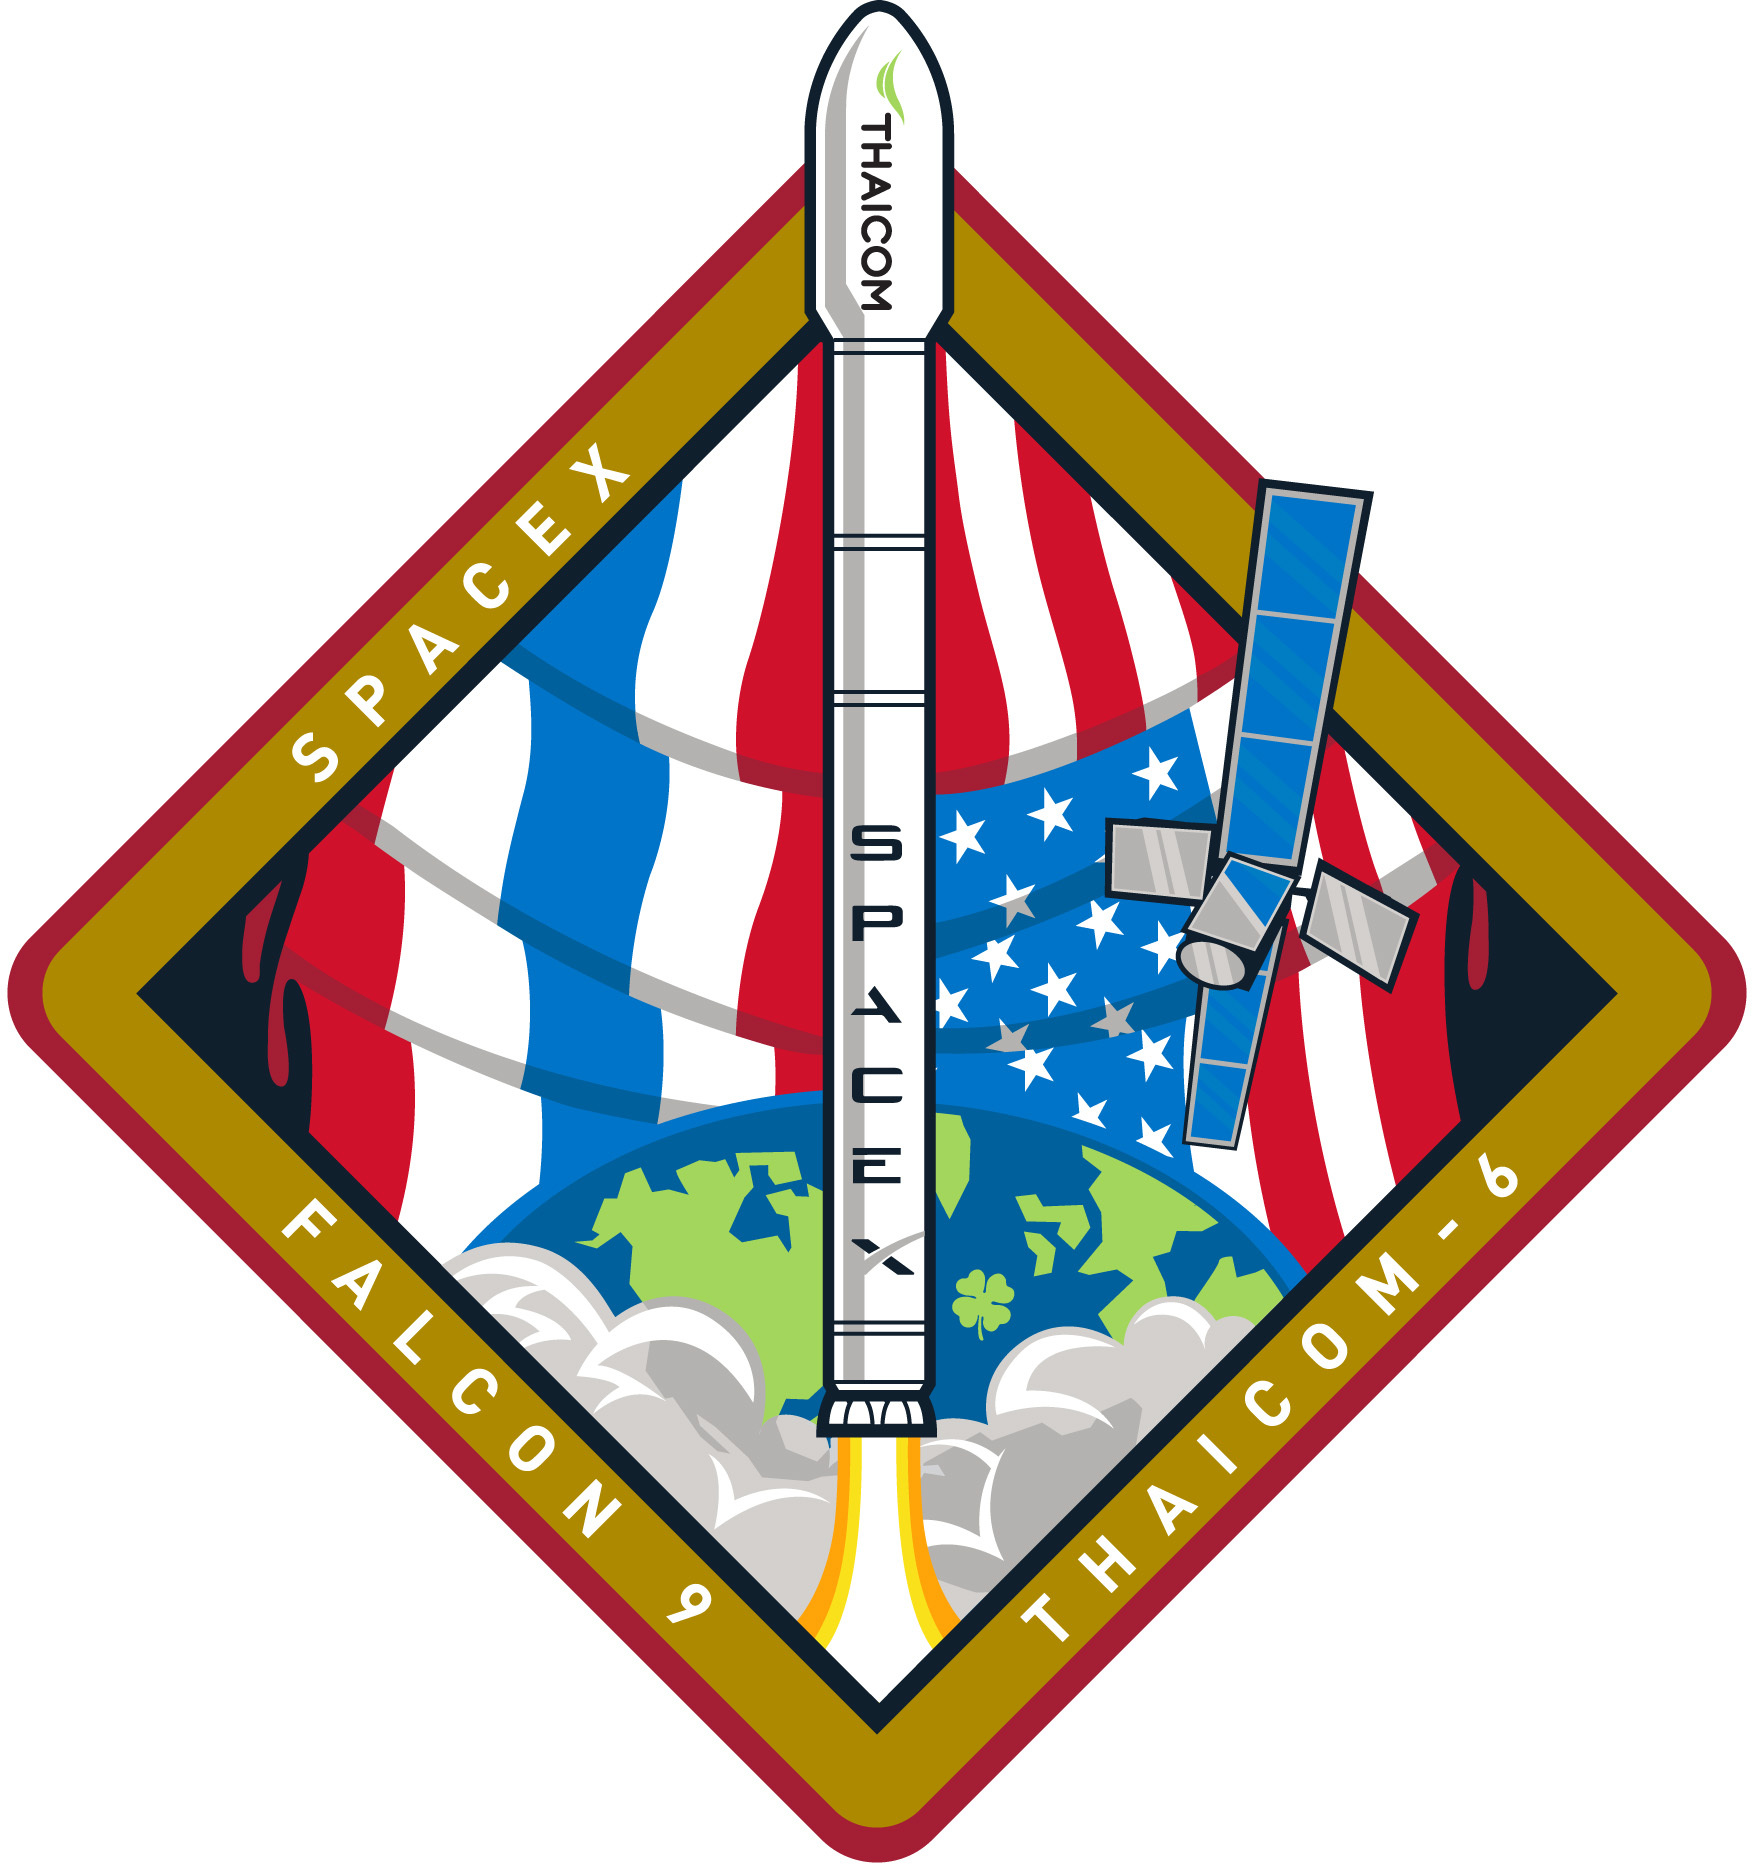 SpaceX's Falcon 9 Thaicom 6 Mission Patch